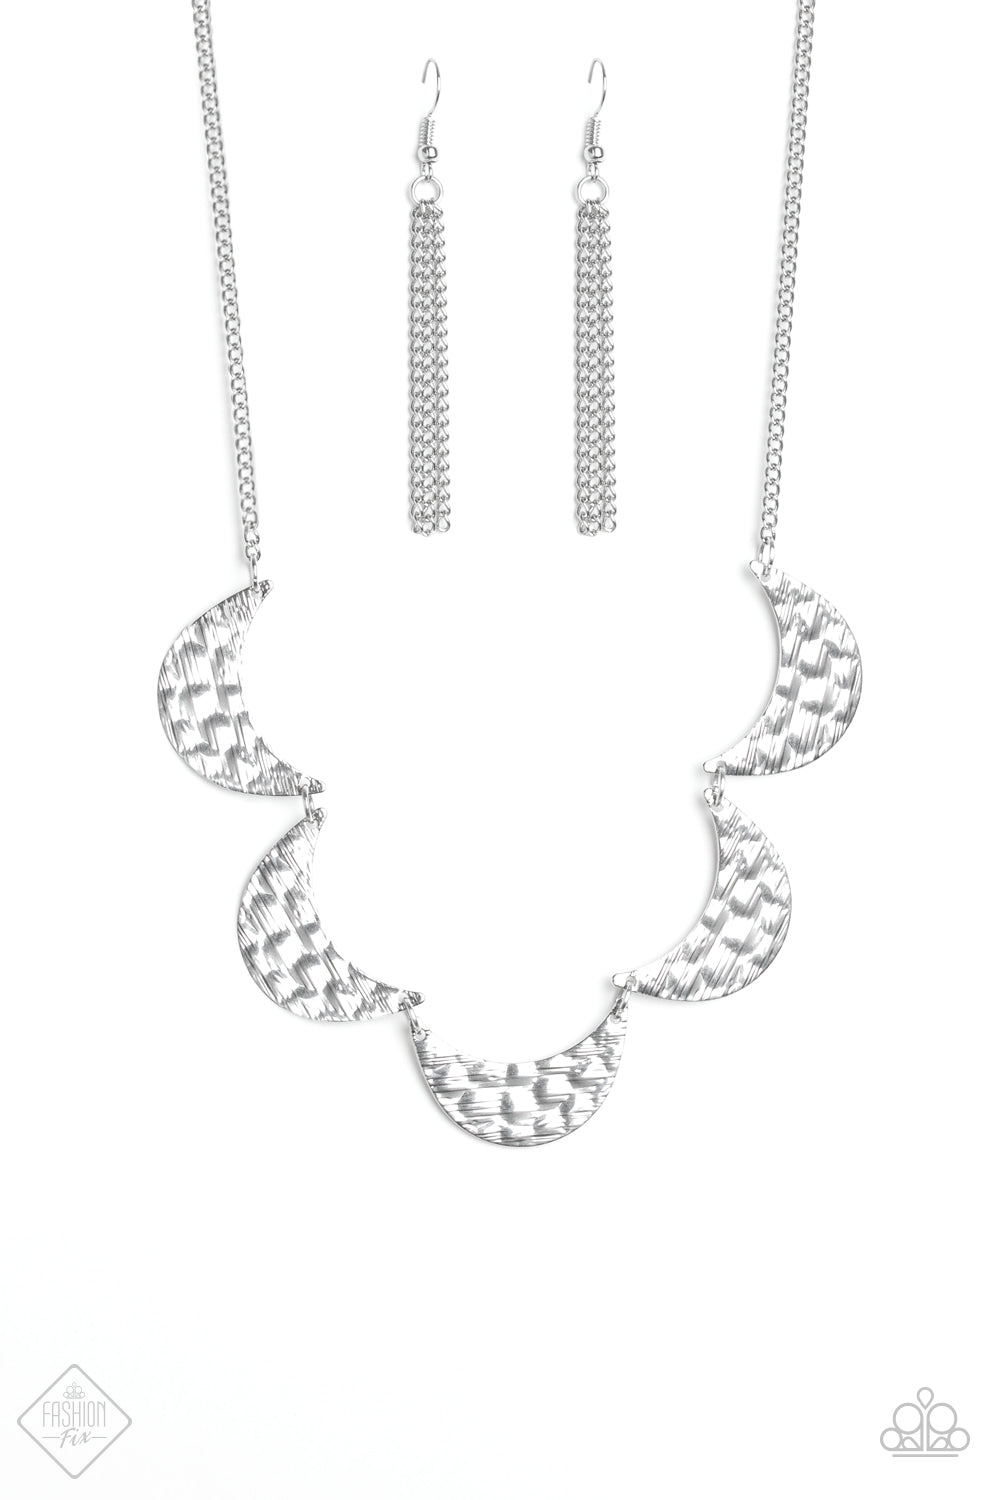 Lunar Lights - Half-Moon Silver Necklace - The Paparazzi Fox